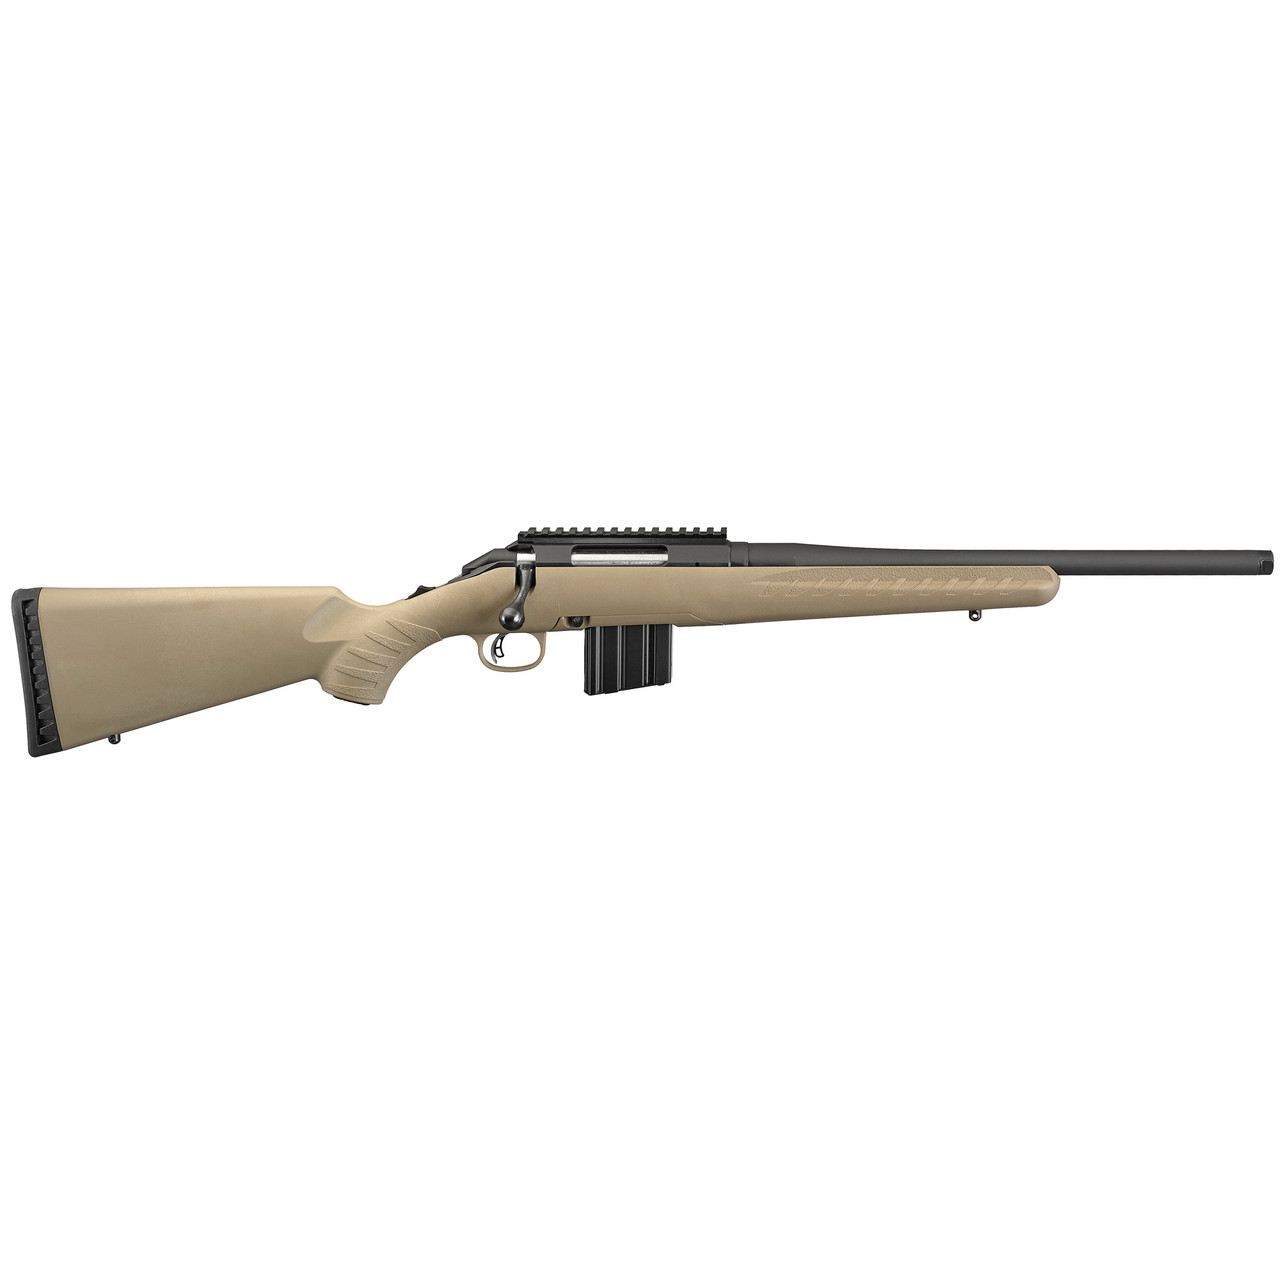 Ruger American Ranch Rifle CALIFORNIA LEGAL - .350 Legend - FDE